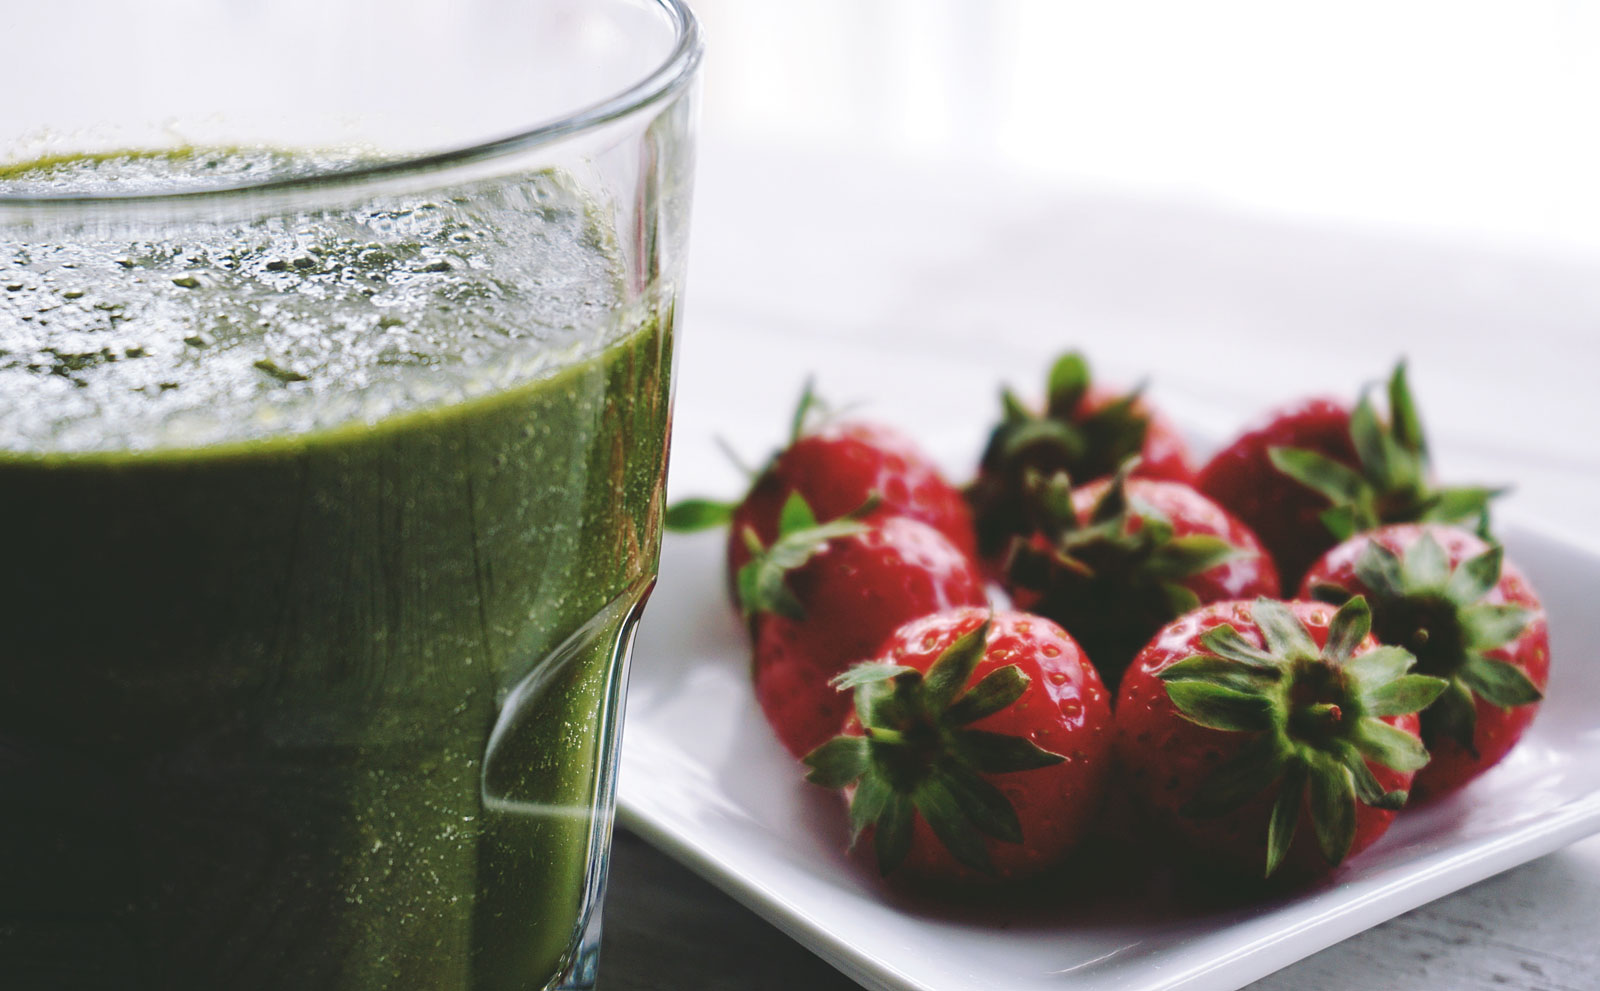 Cucumber Juice With Strawberry | The 6 Amazing Benefits Of Juicing Cucumber